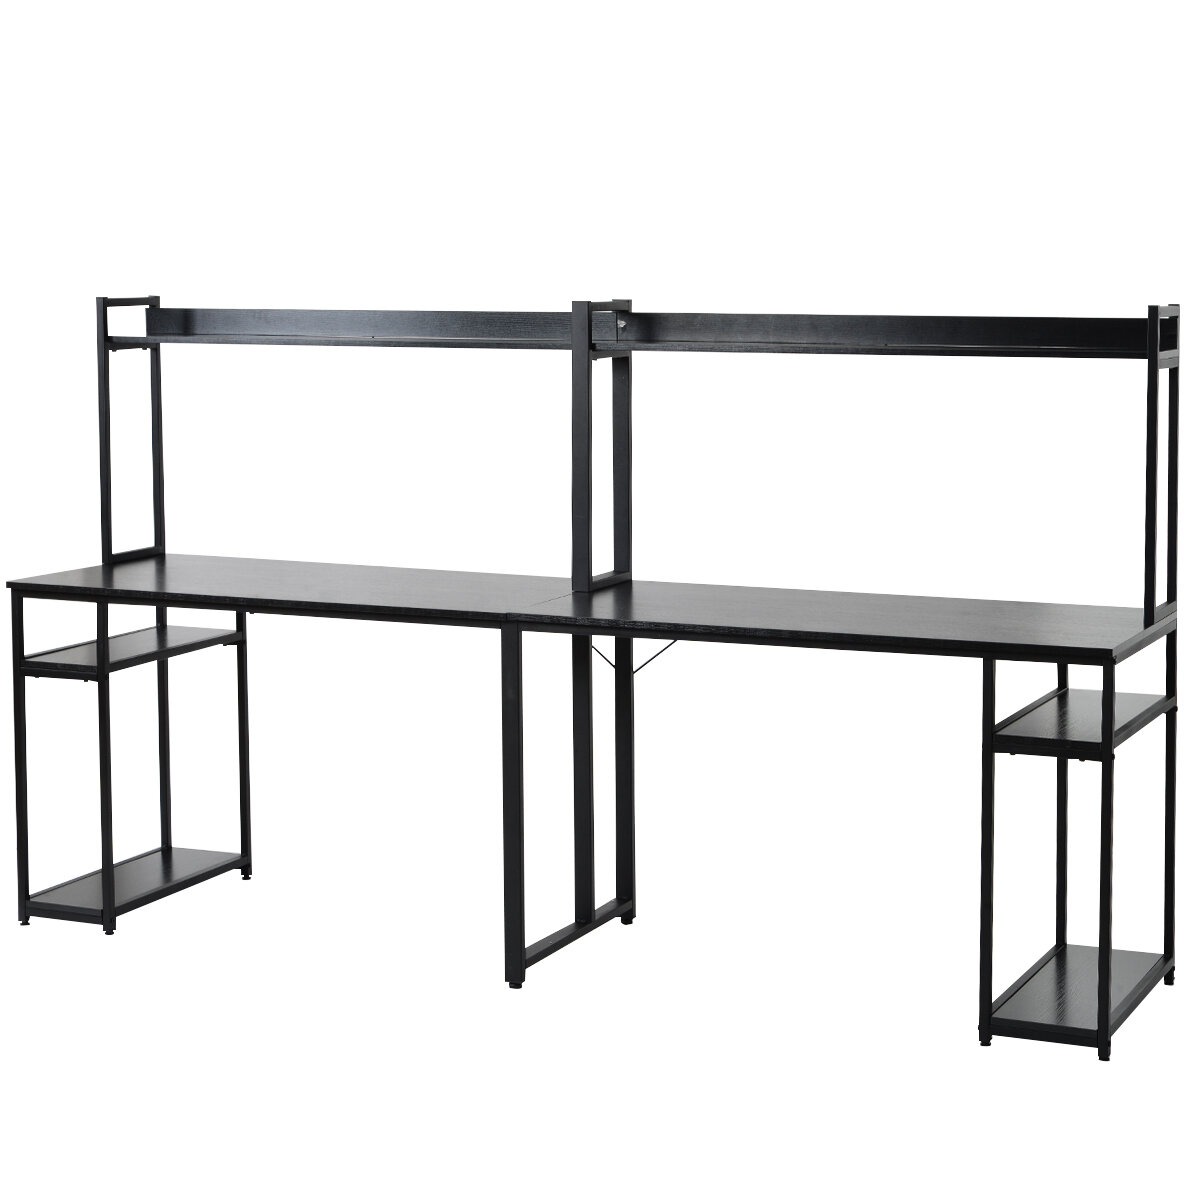 Inbox Zero Home Office Double Workstation Desk Two Person Computer Desk With Storage Spacious Tabletop Multifunction Writing Desk With Shelf Black Wayfair Ca